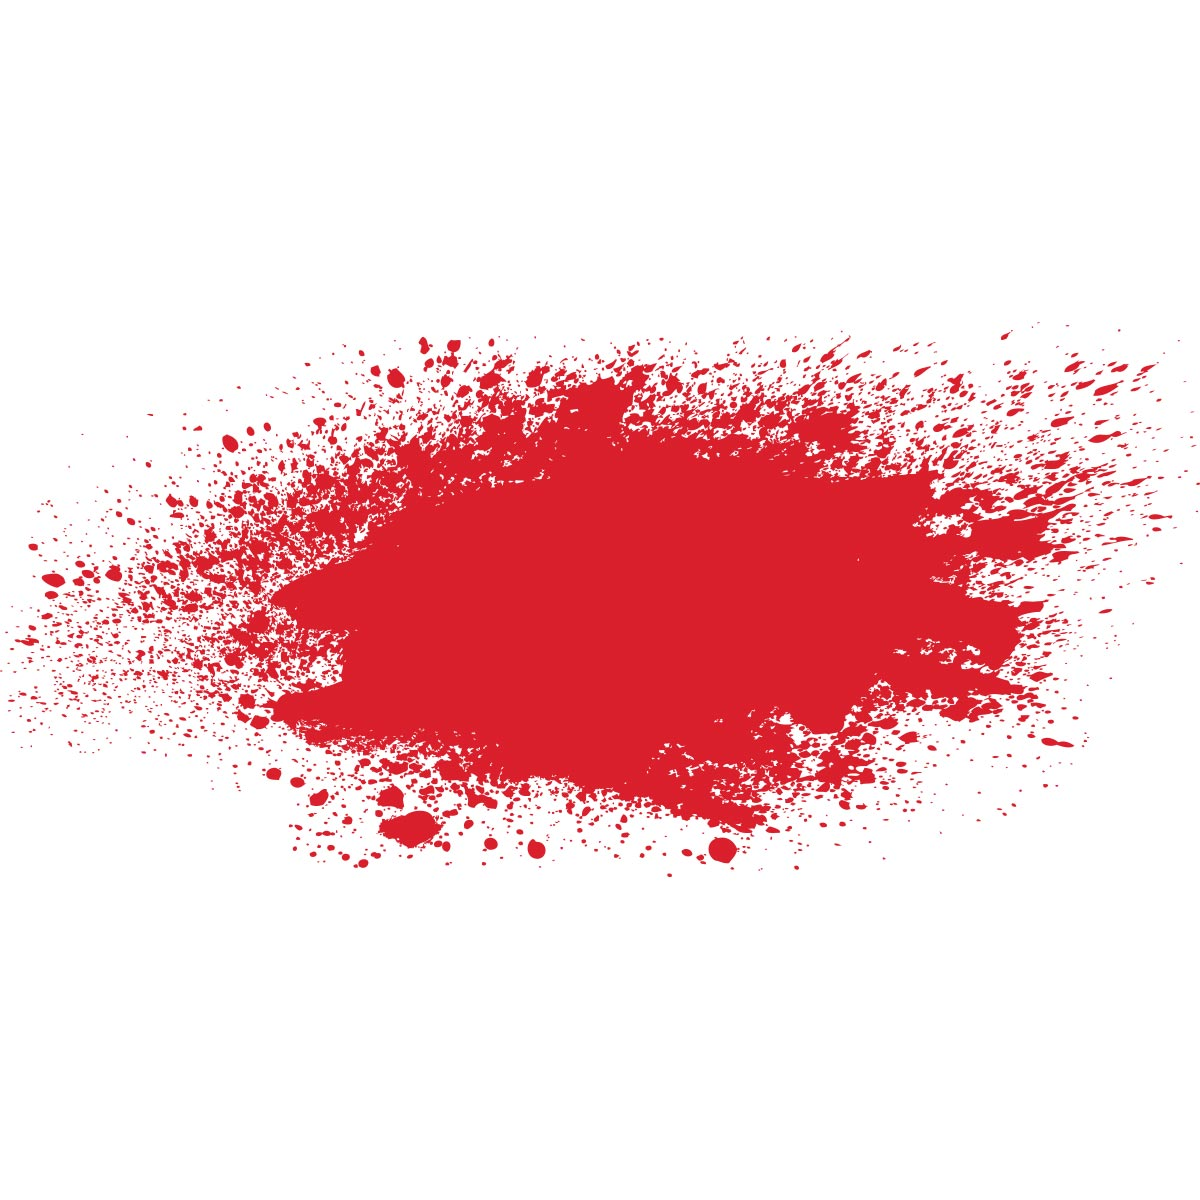 FolkArt ® Stencil Spray™ Acrylic Paint - Bright Red, 2 oz. - 6186